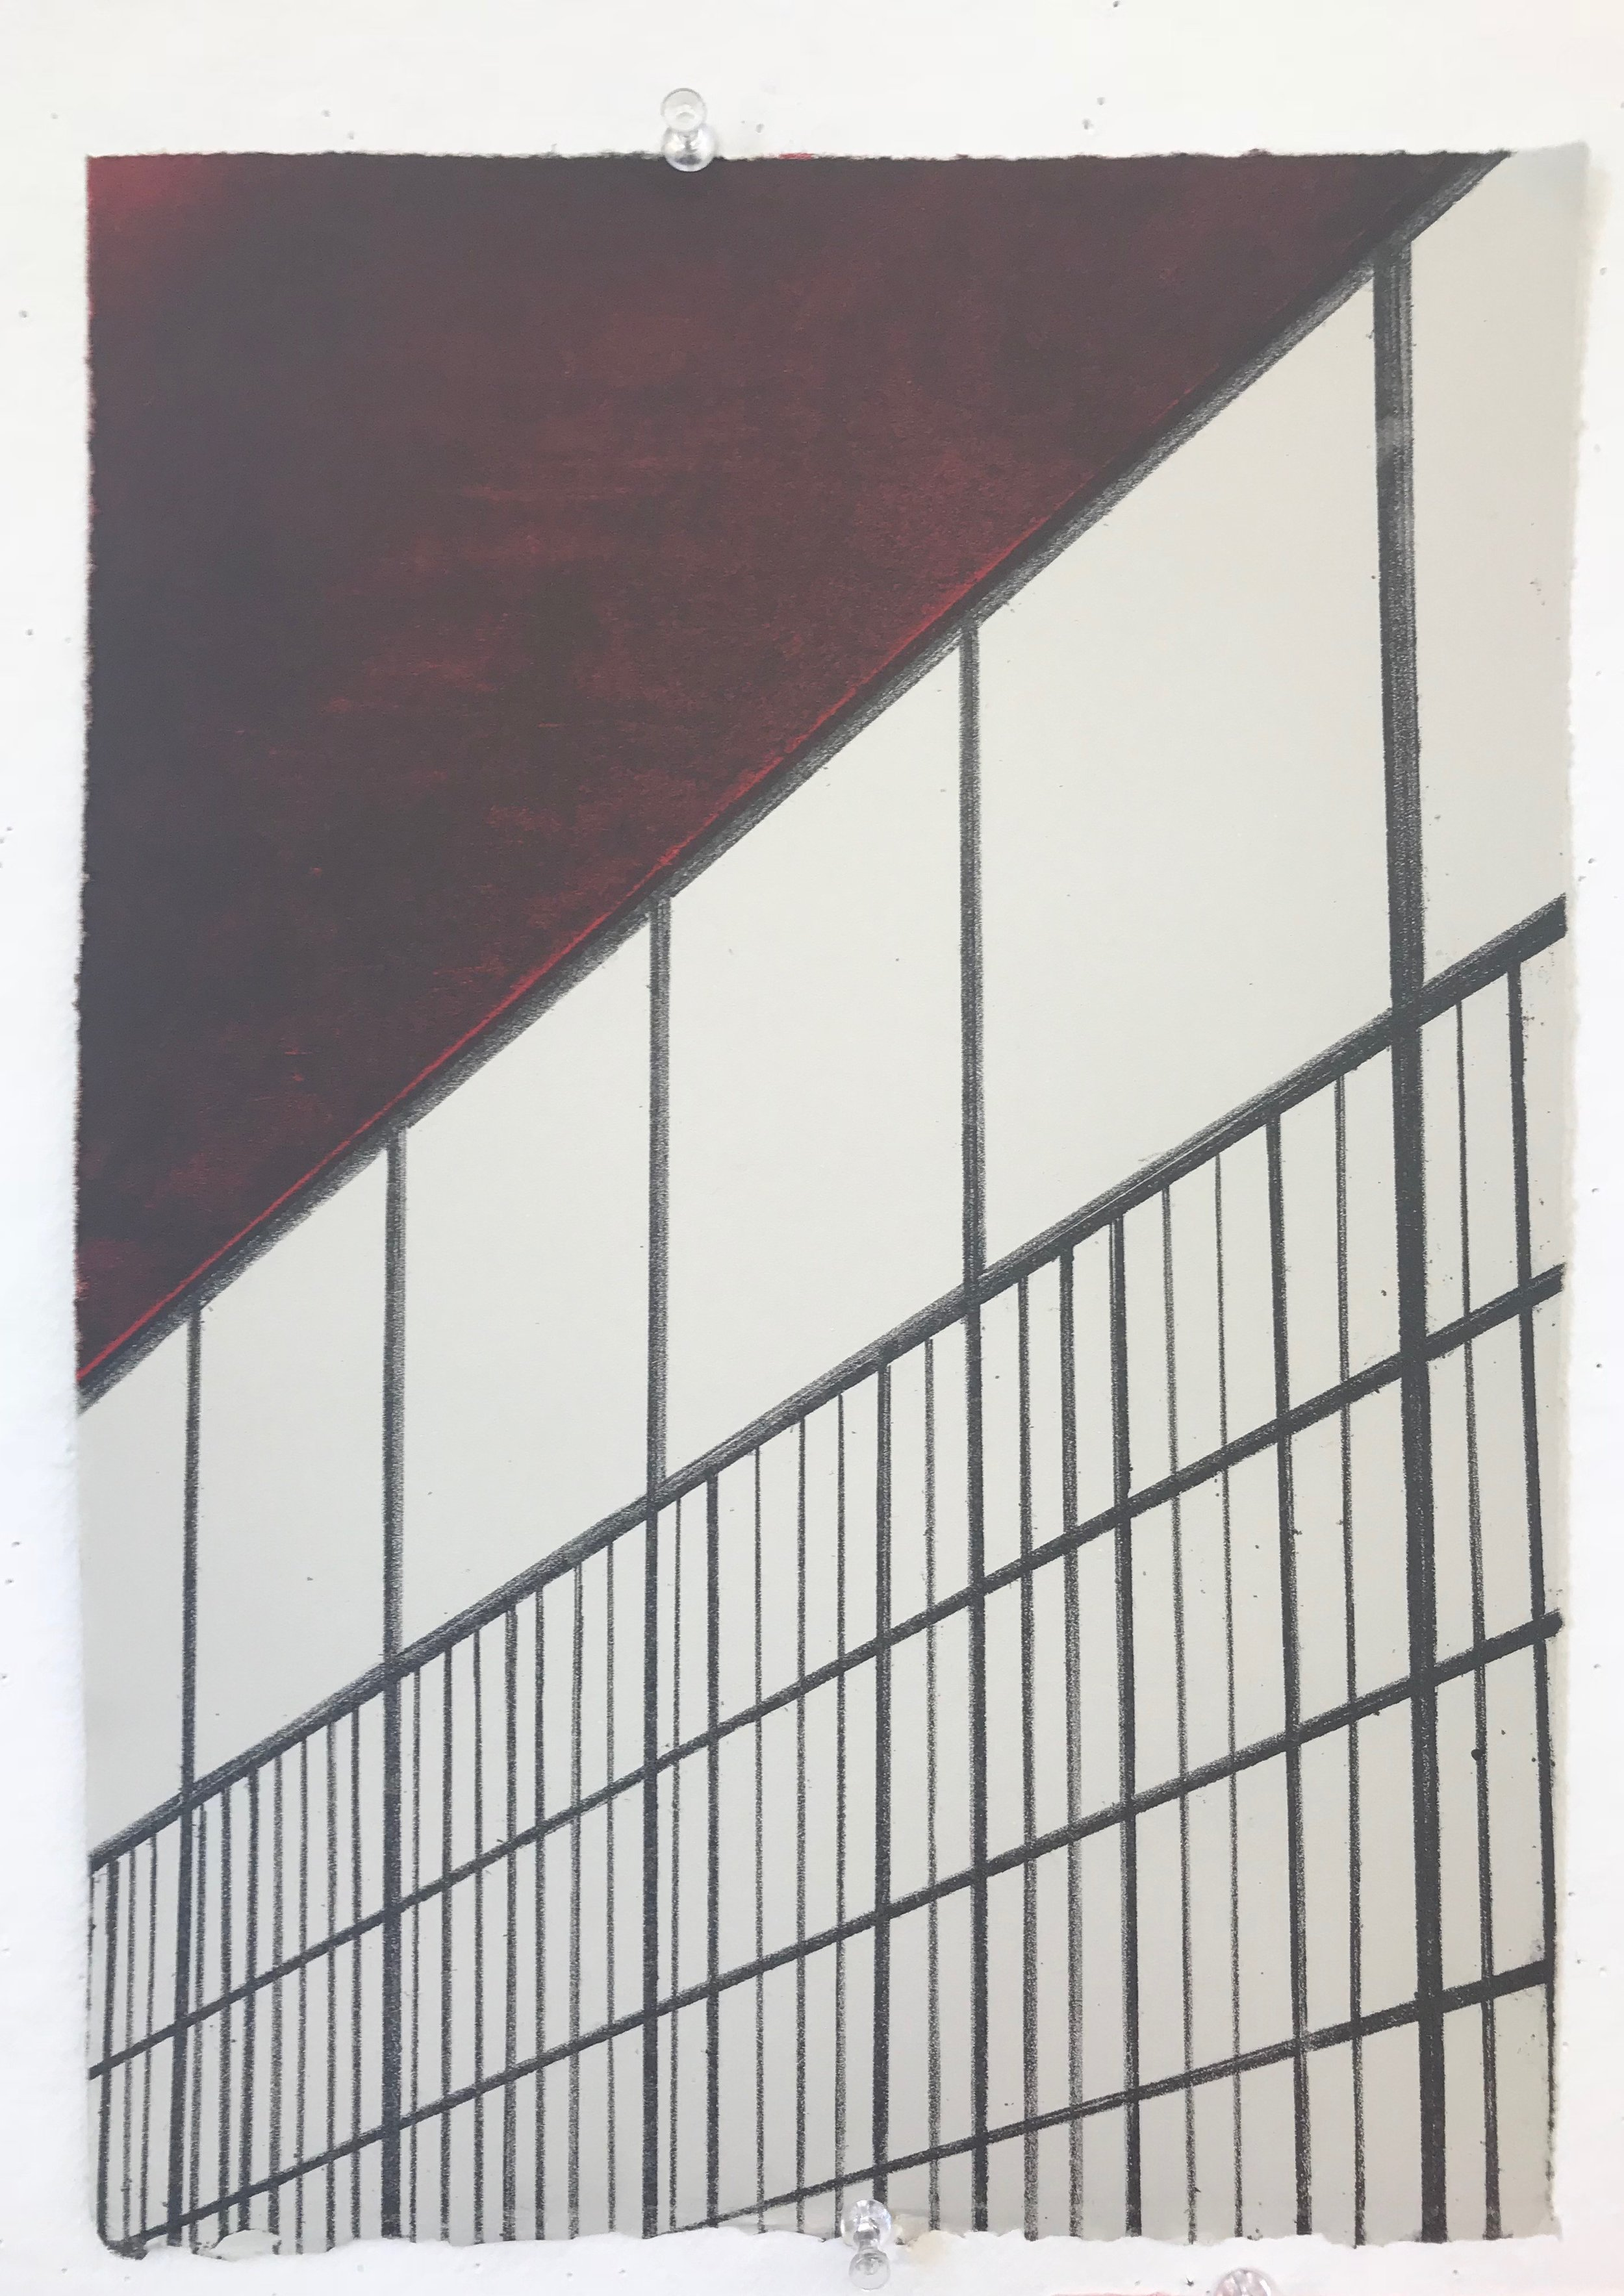 """Coliseum, Dark Red Sky , 2018, Lithograph, 14"""" x 10"""", Printed at Crow's Shadow Institute of the Arts, Collaborating printer, Judith Baumann"""